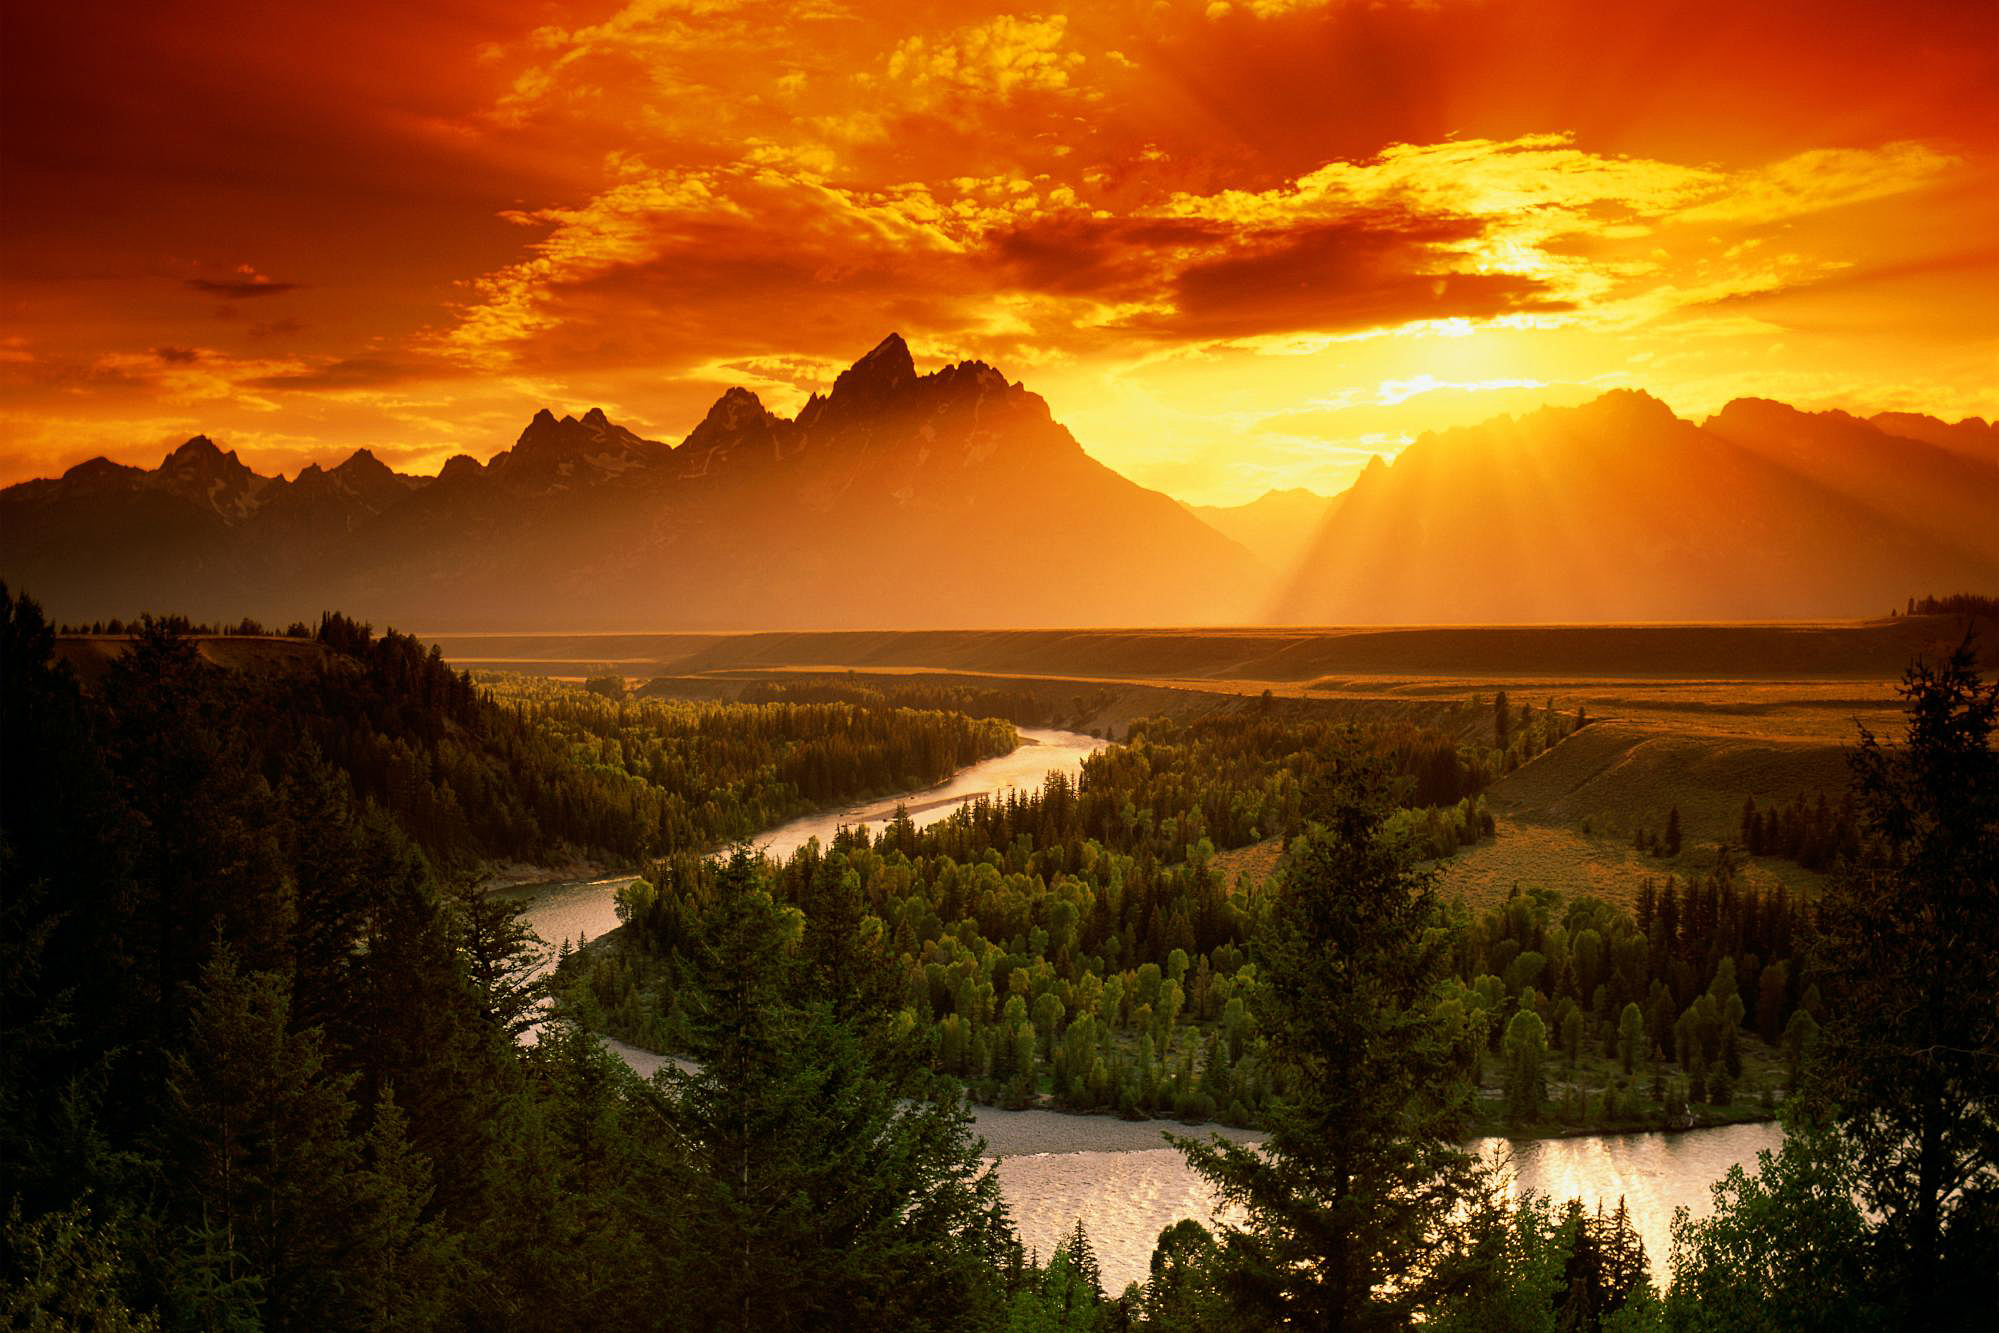 sunrise pictures in the mountains - HD1999×1333